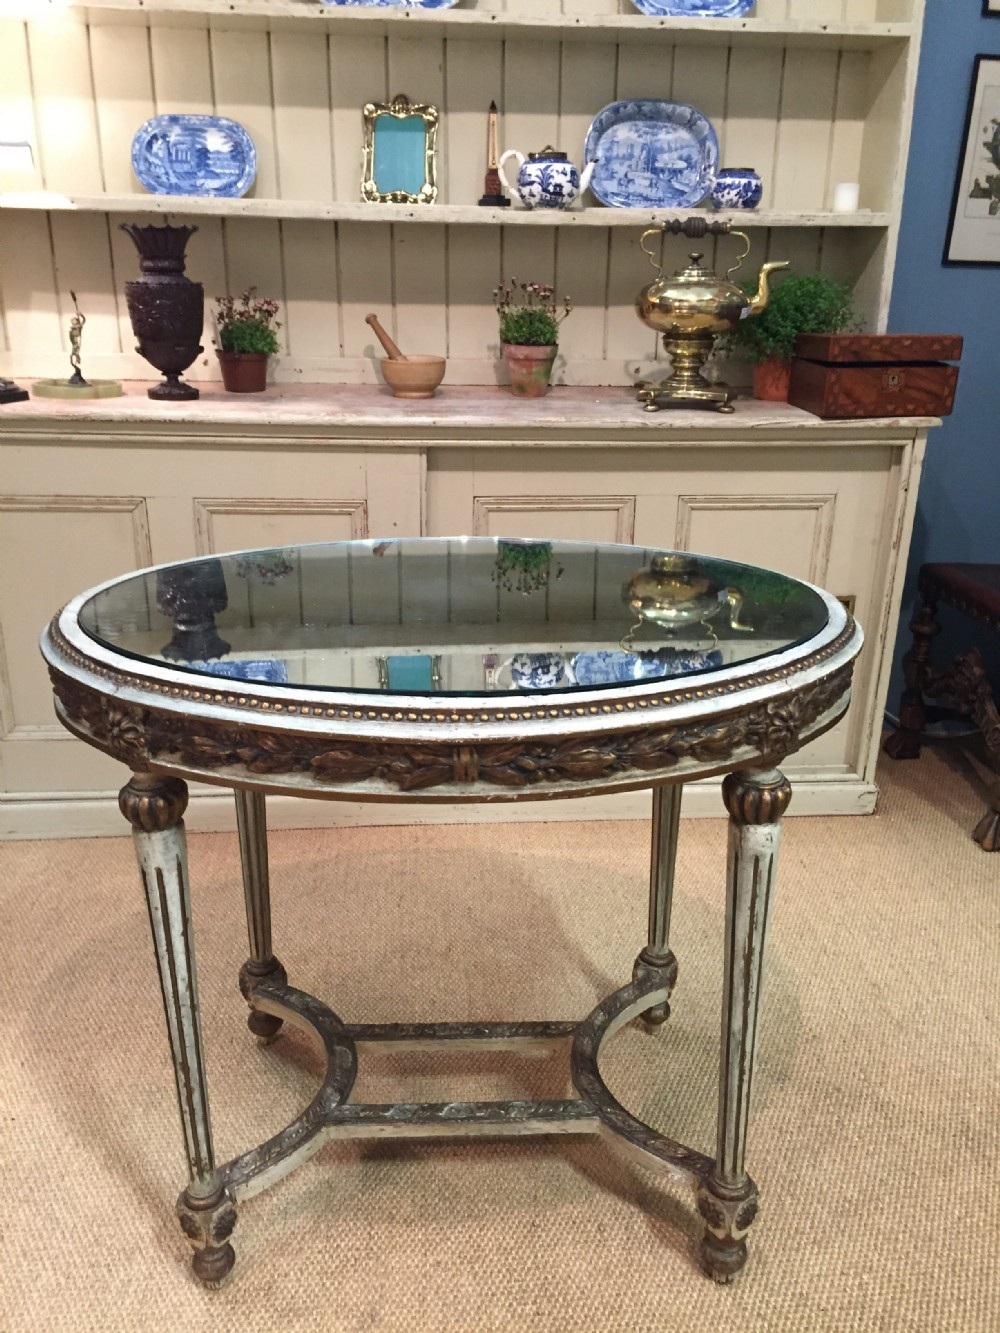 fantastic 19th century french oval centre table with mirror glass top